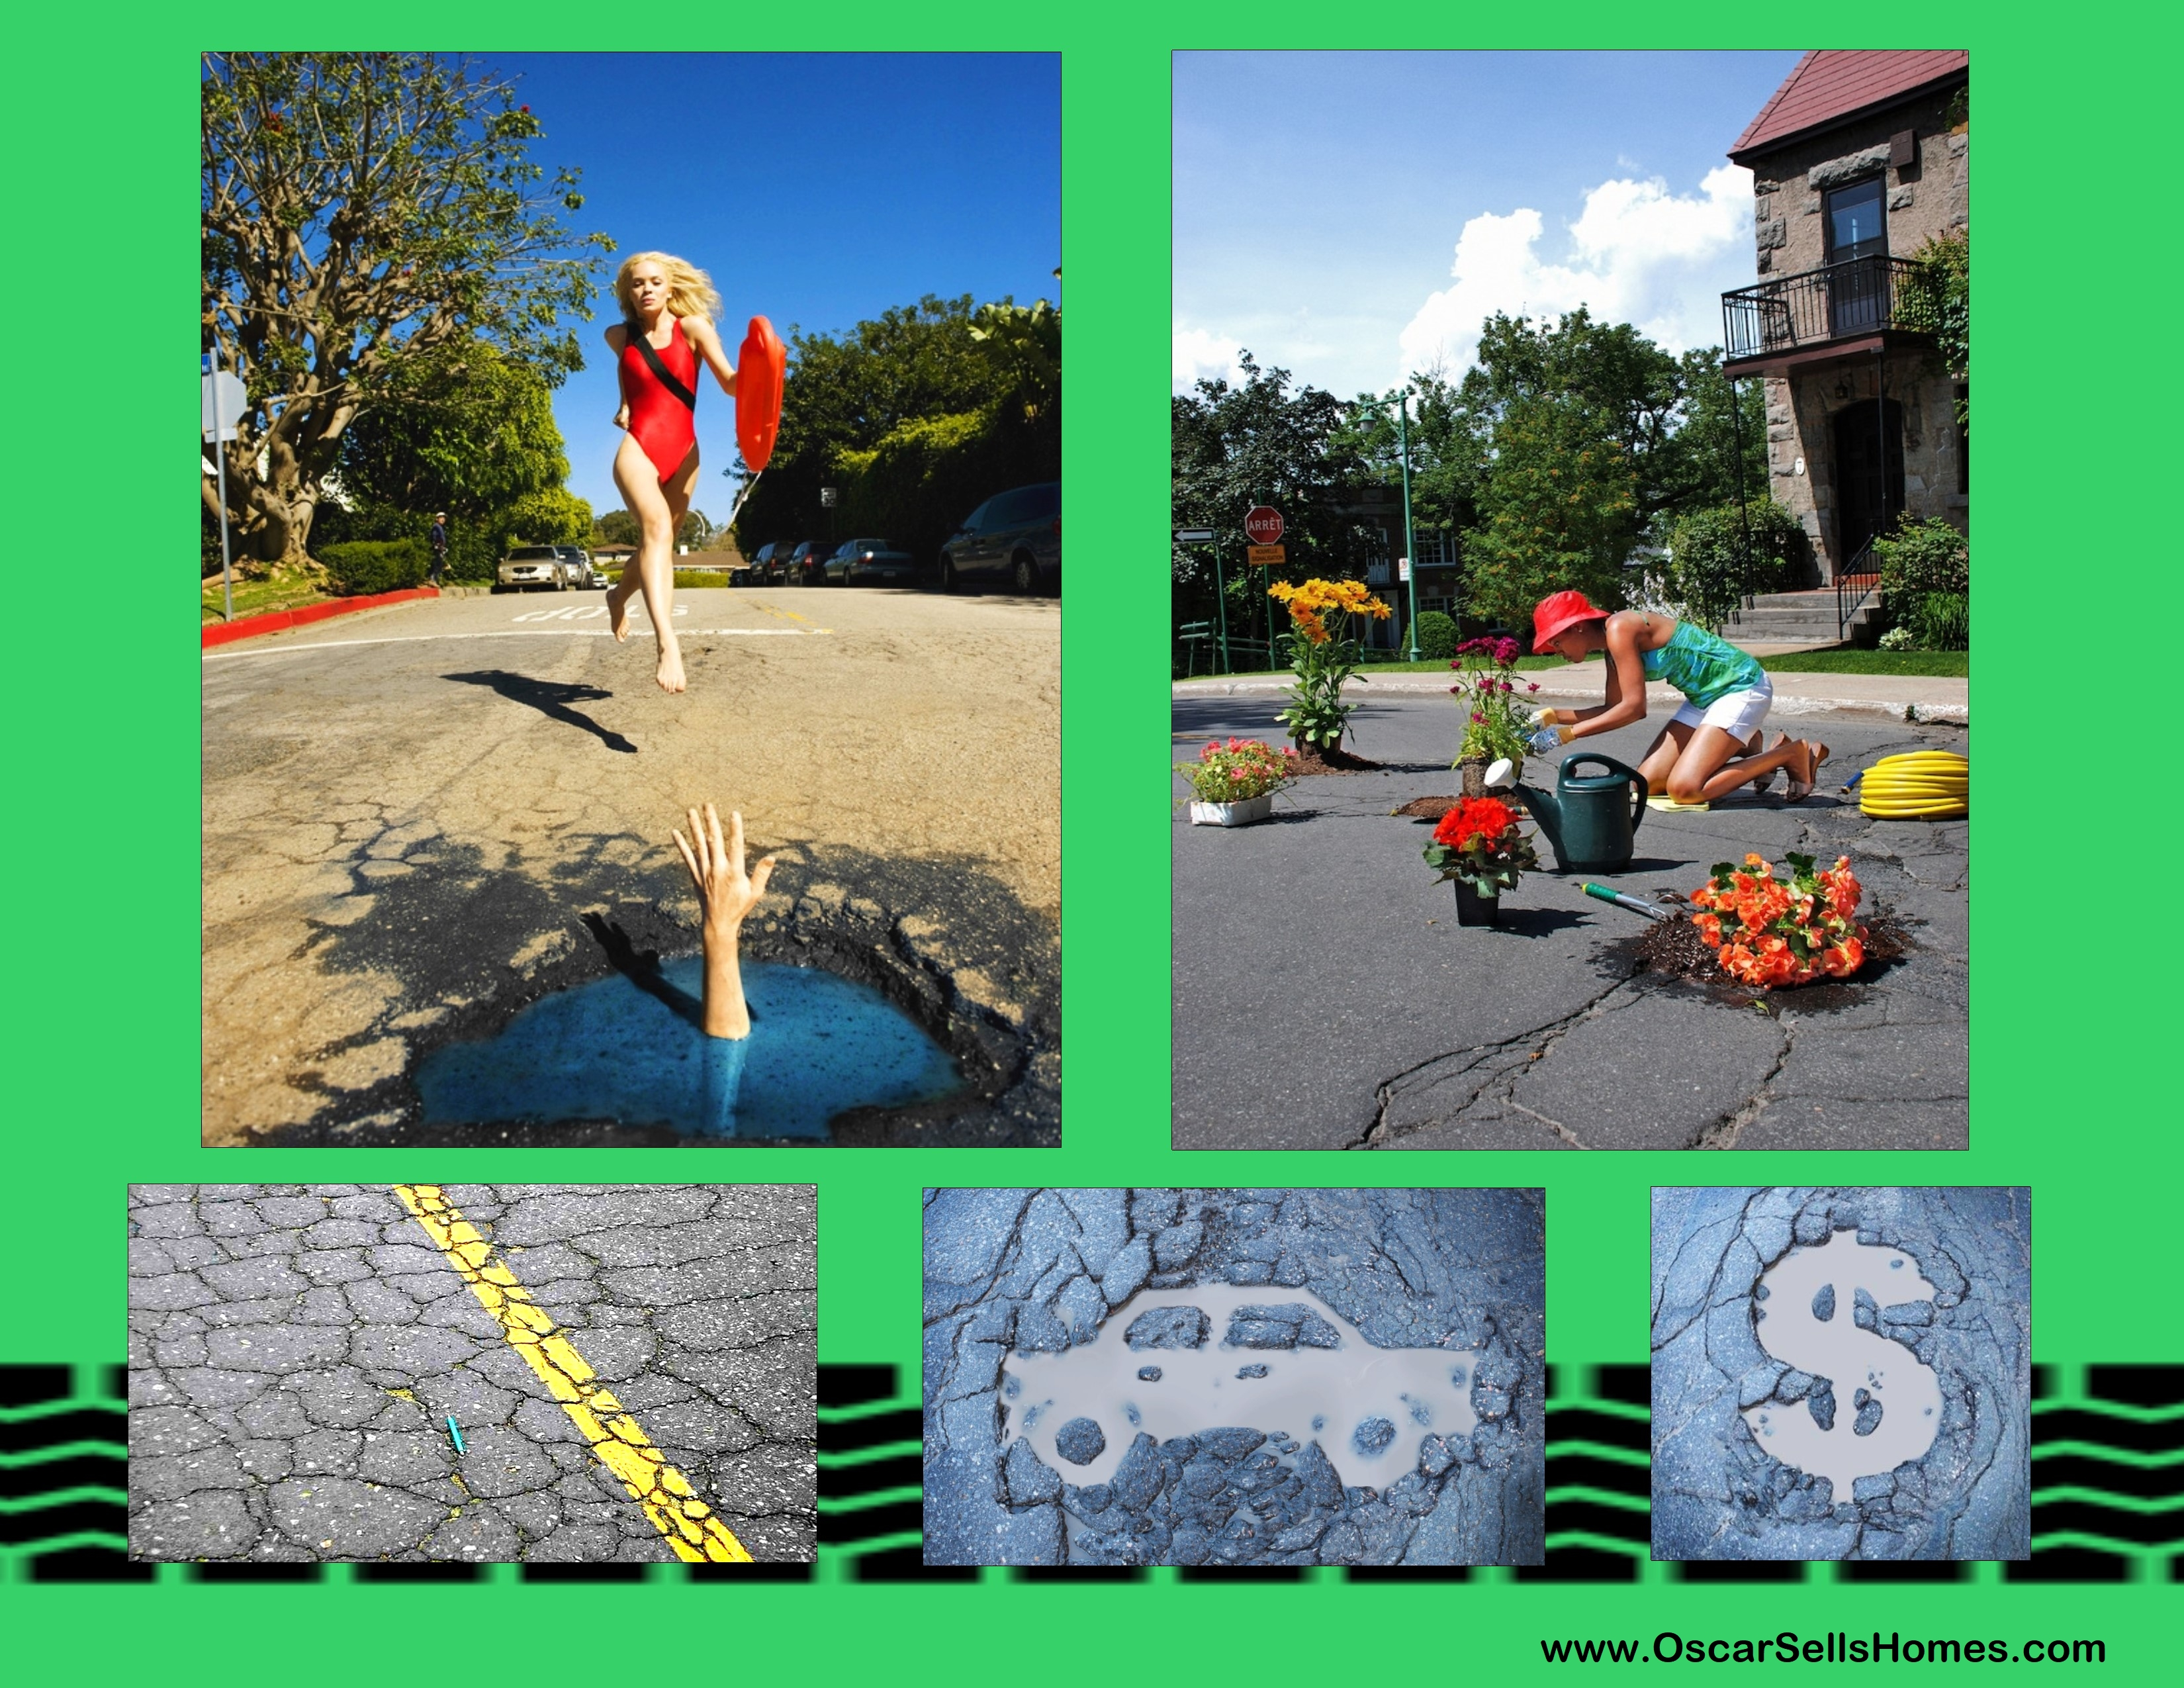 Street Potholes do affect value of your home